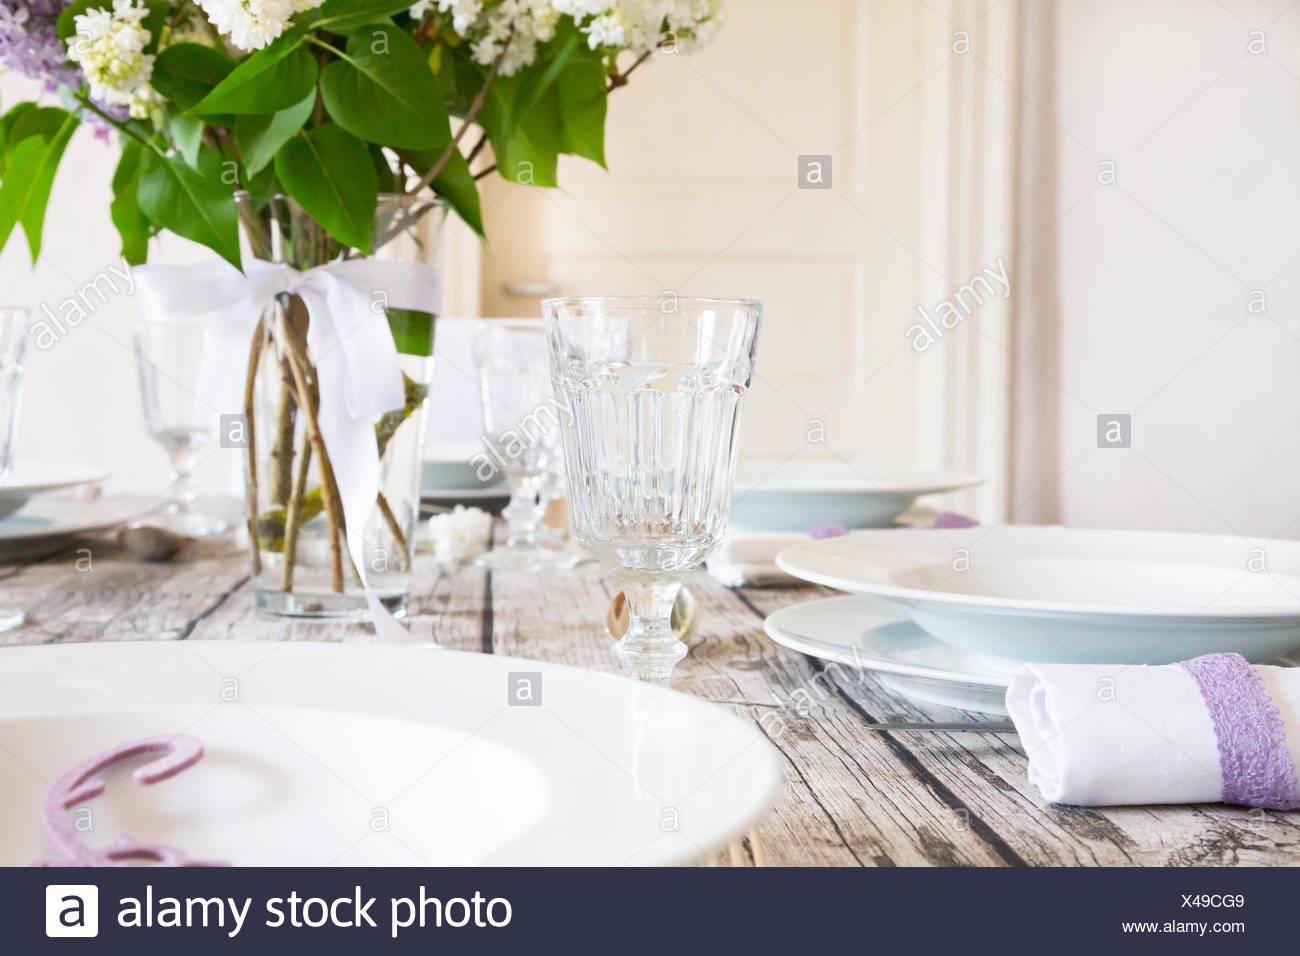 Laid table with lilac - Stock Image